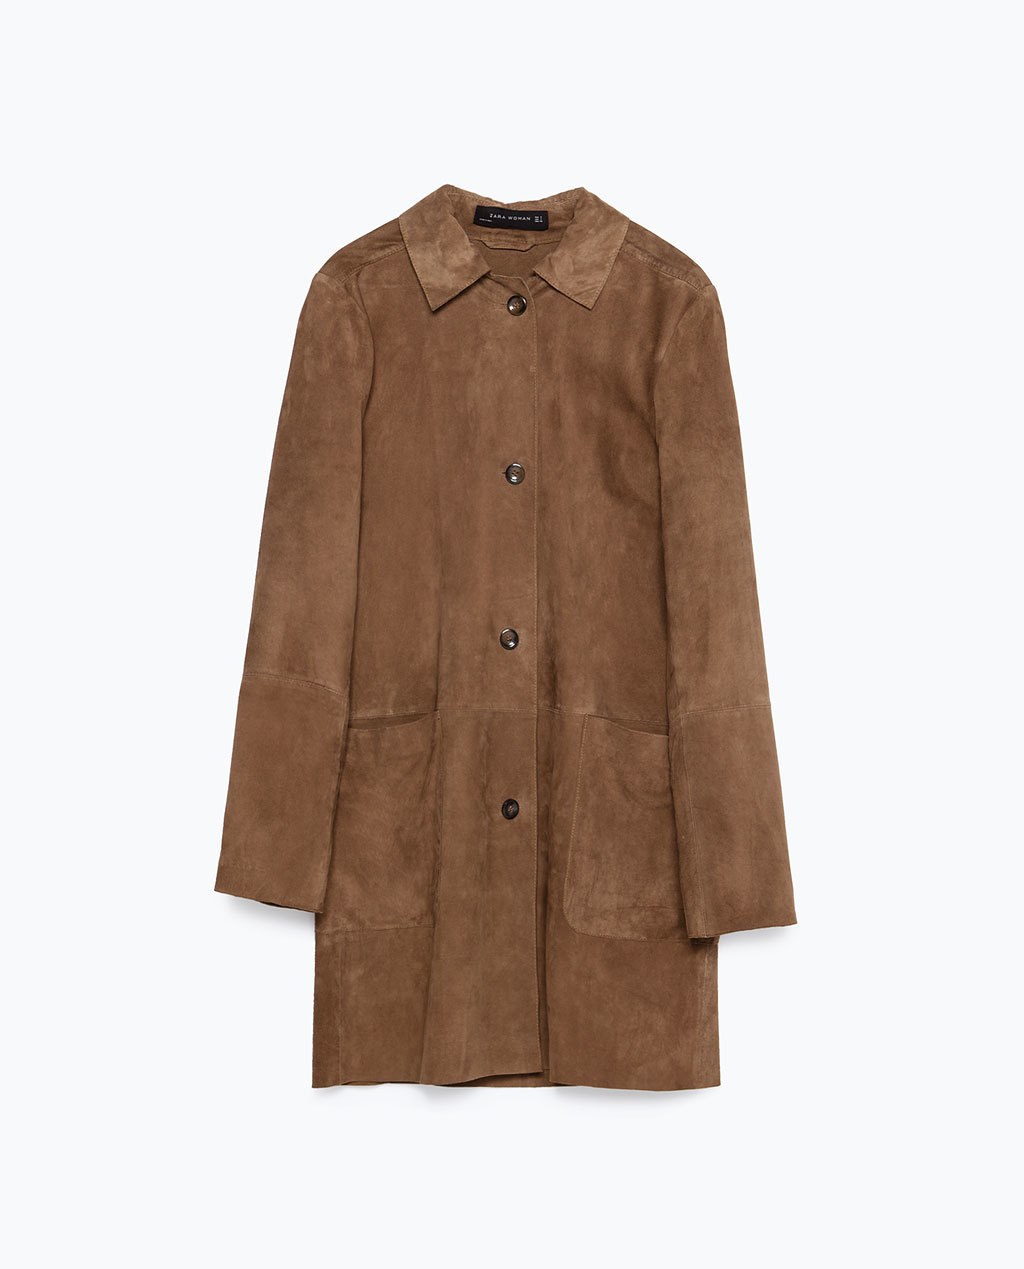 Suede Overcoat - pattern: plain; style: single breasted; length: mid thigh; predominant colour: tan; occasions: casual, creative work; fit: straight cut (boxy); fibres: leather - 100%; collar: shirt collar/peter pan/zip with opening; sleeve length: long sleeve; sleeve style: standard; collar break: high; pattern type: fabric; texture group: suede; season: a/w 2015; trends: folky 70s; wardrobe: highlight